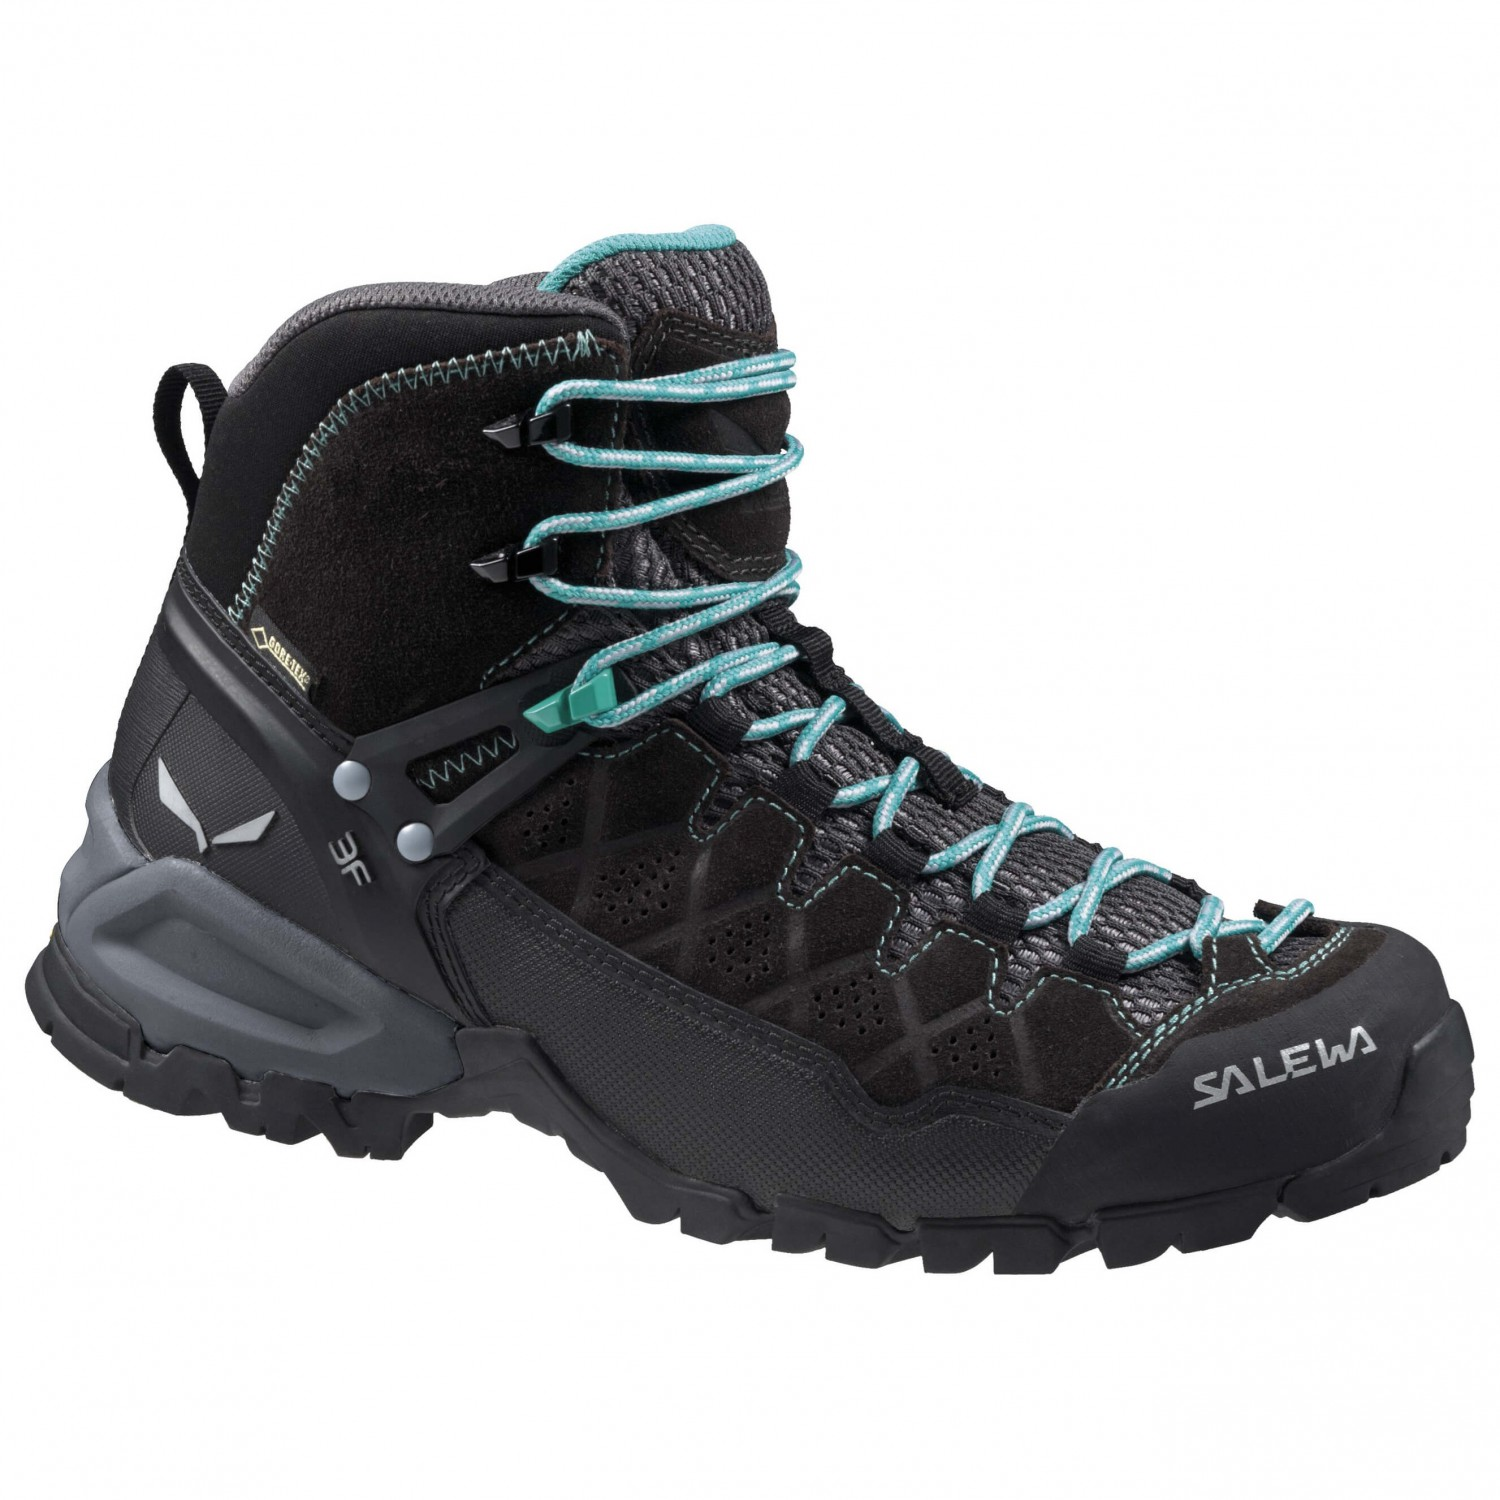 Salewa - Women's Alp Trainer MID GTX - Wanderschuhe Black Out / Agata